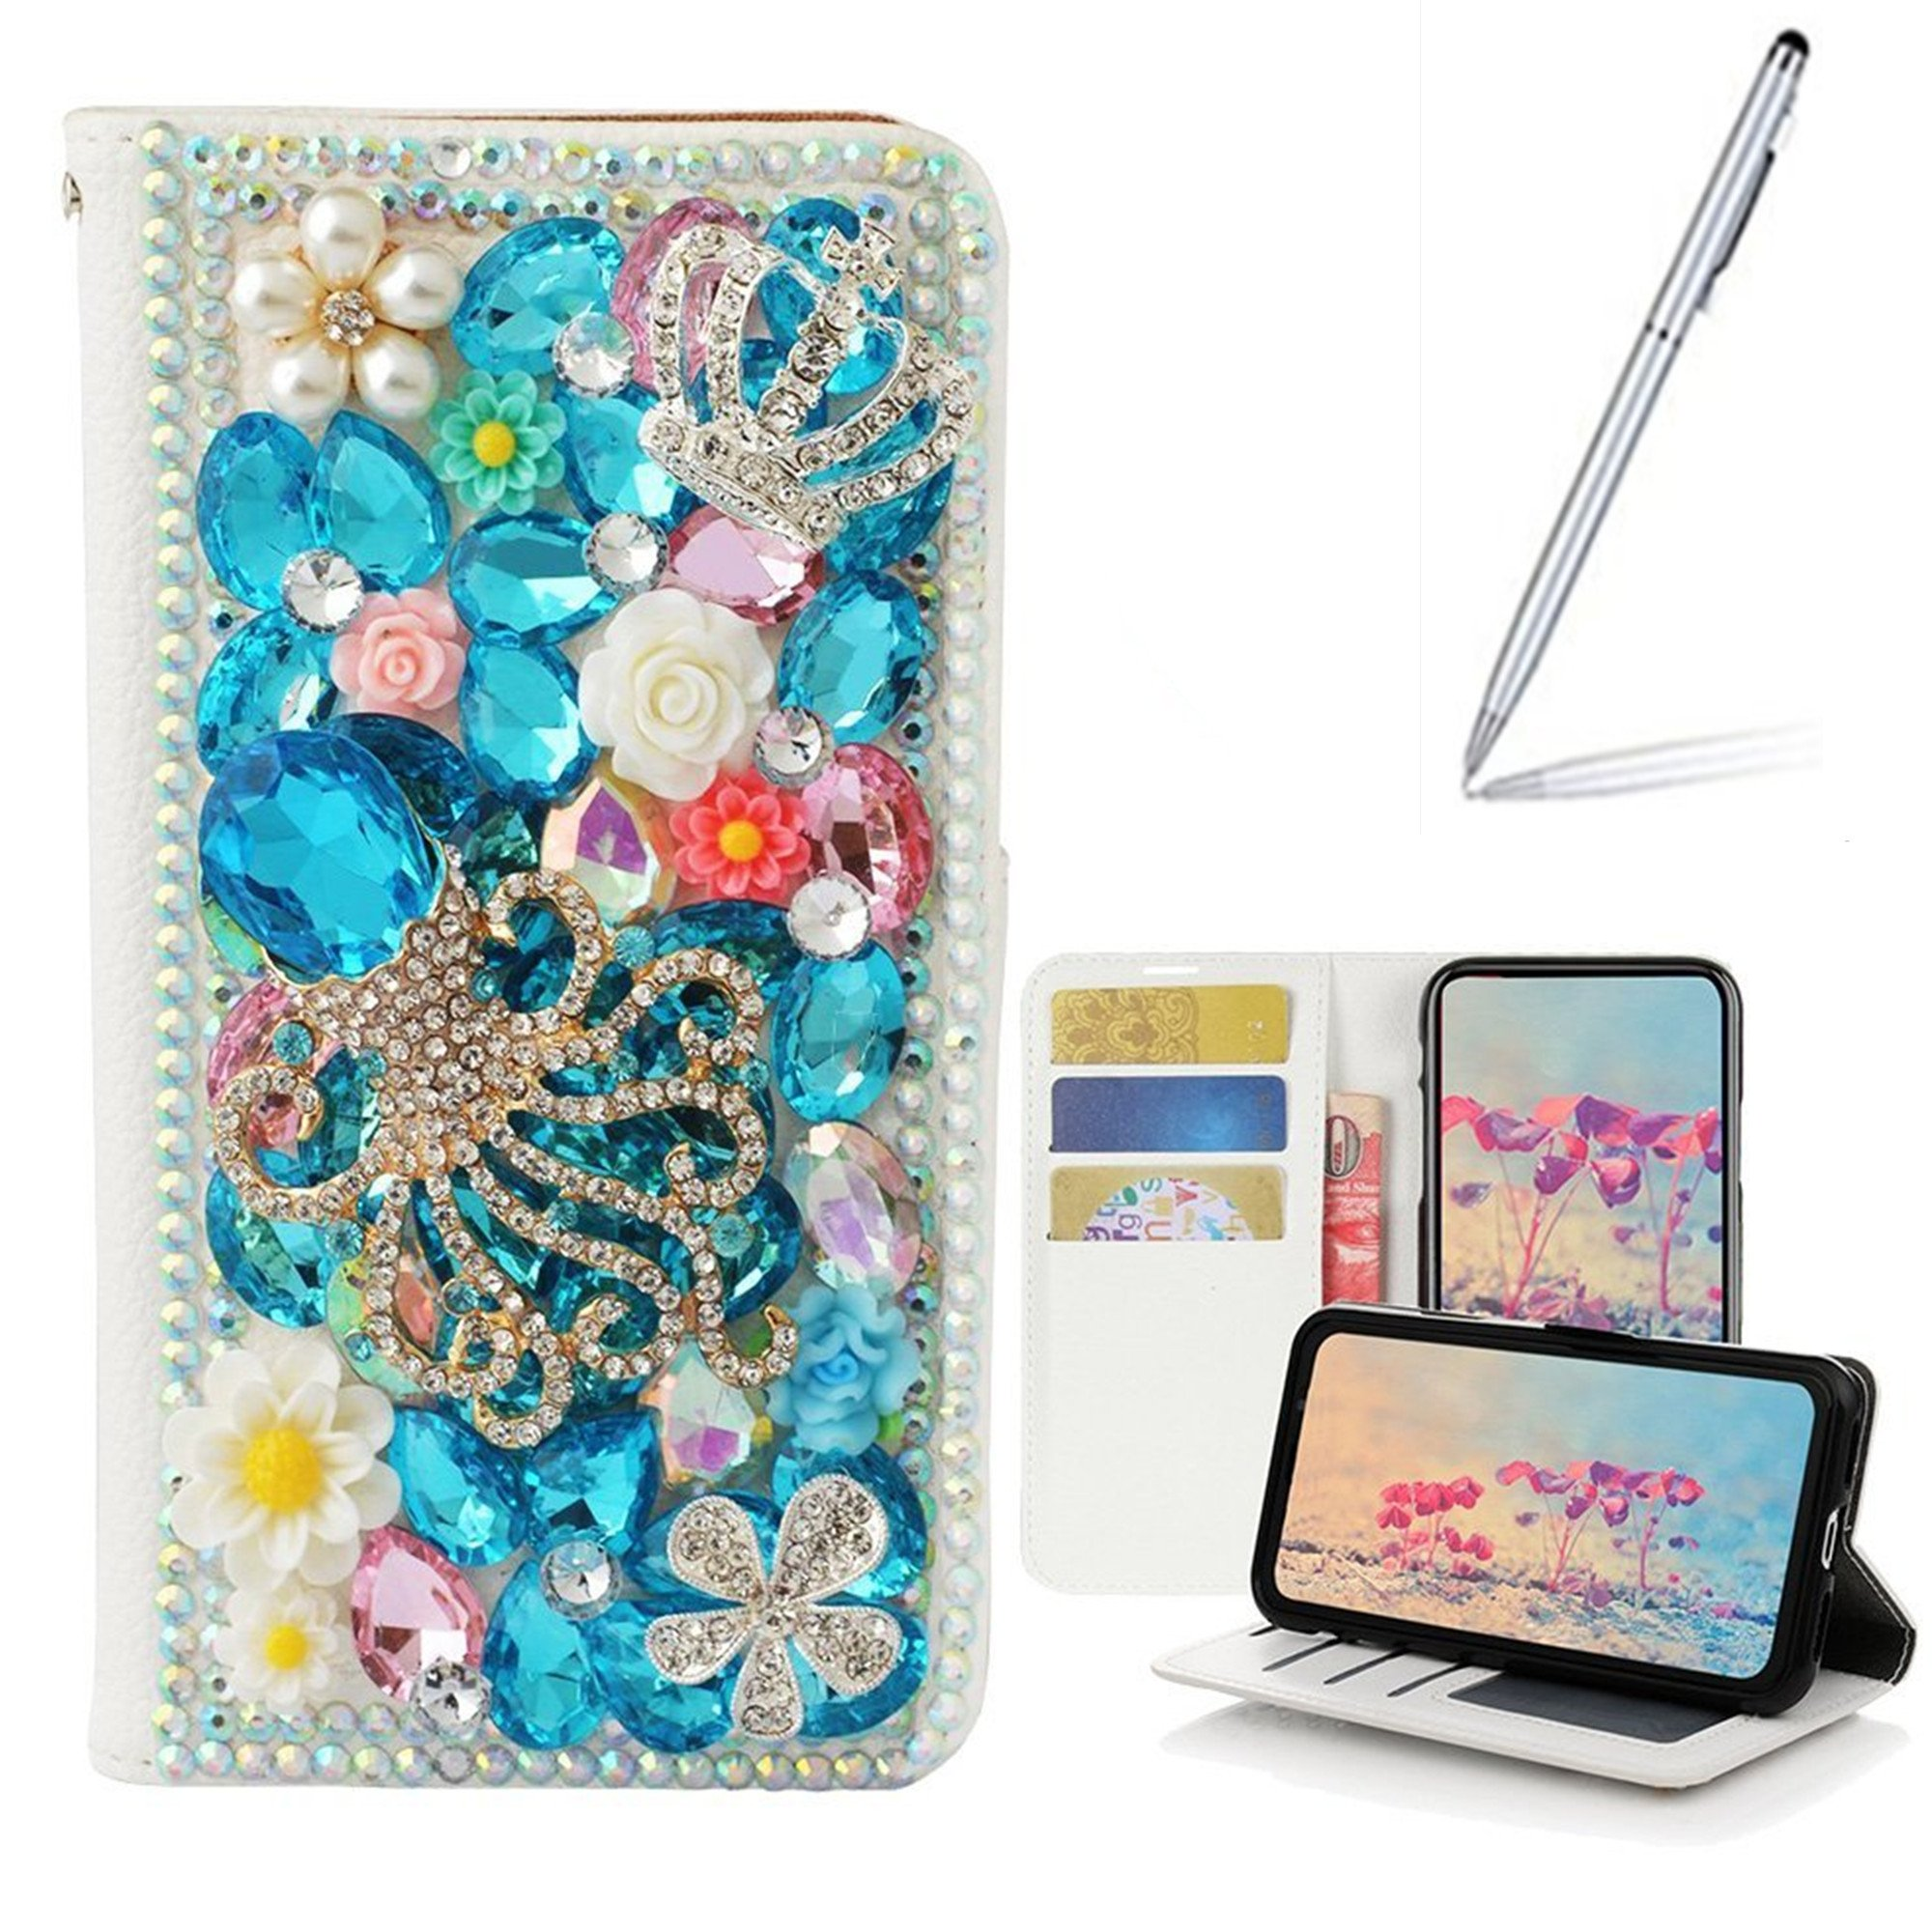 Yaheeda Galaxy S9 Case with 2 in 1 Stylus and Ballpoint Pen, [Stand Feature] Butterfly Crystal Wallet Case Premium [Bling Luxury] Leather Flip Cover [Card Slots] For Samsung Galaxy S9